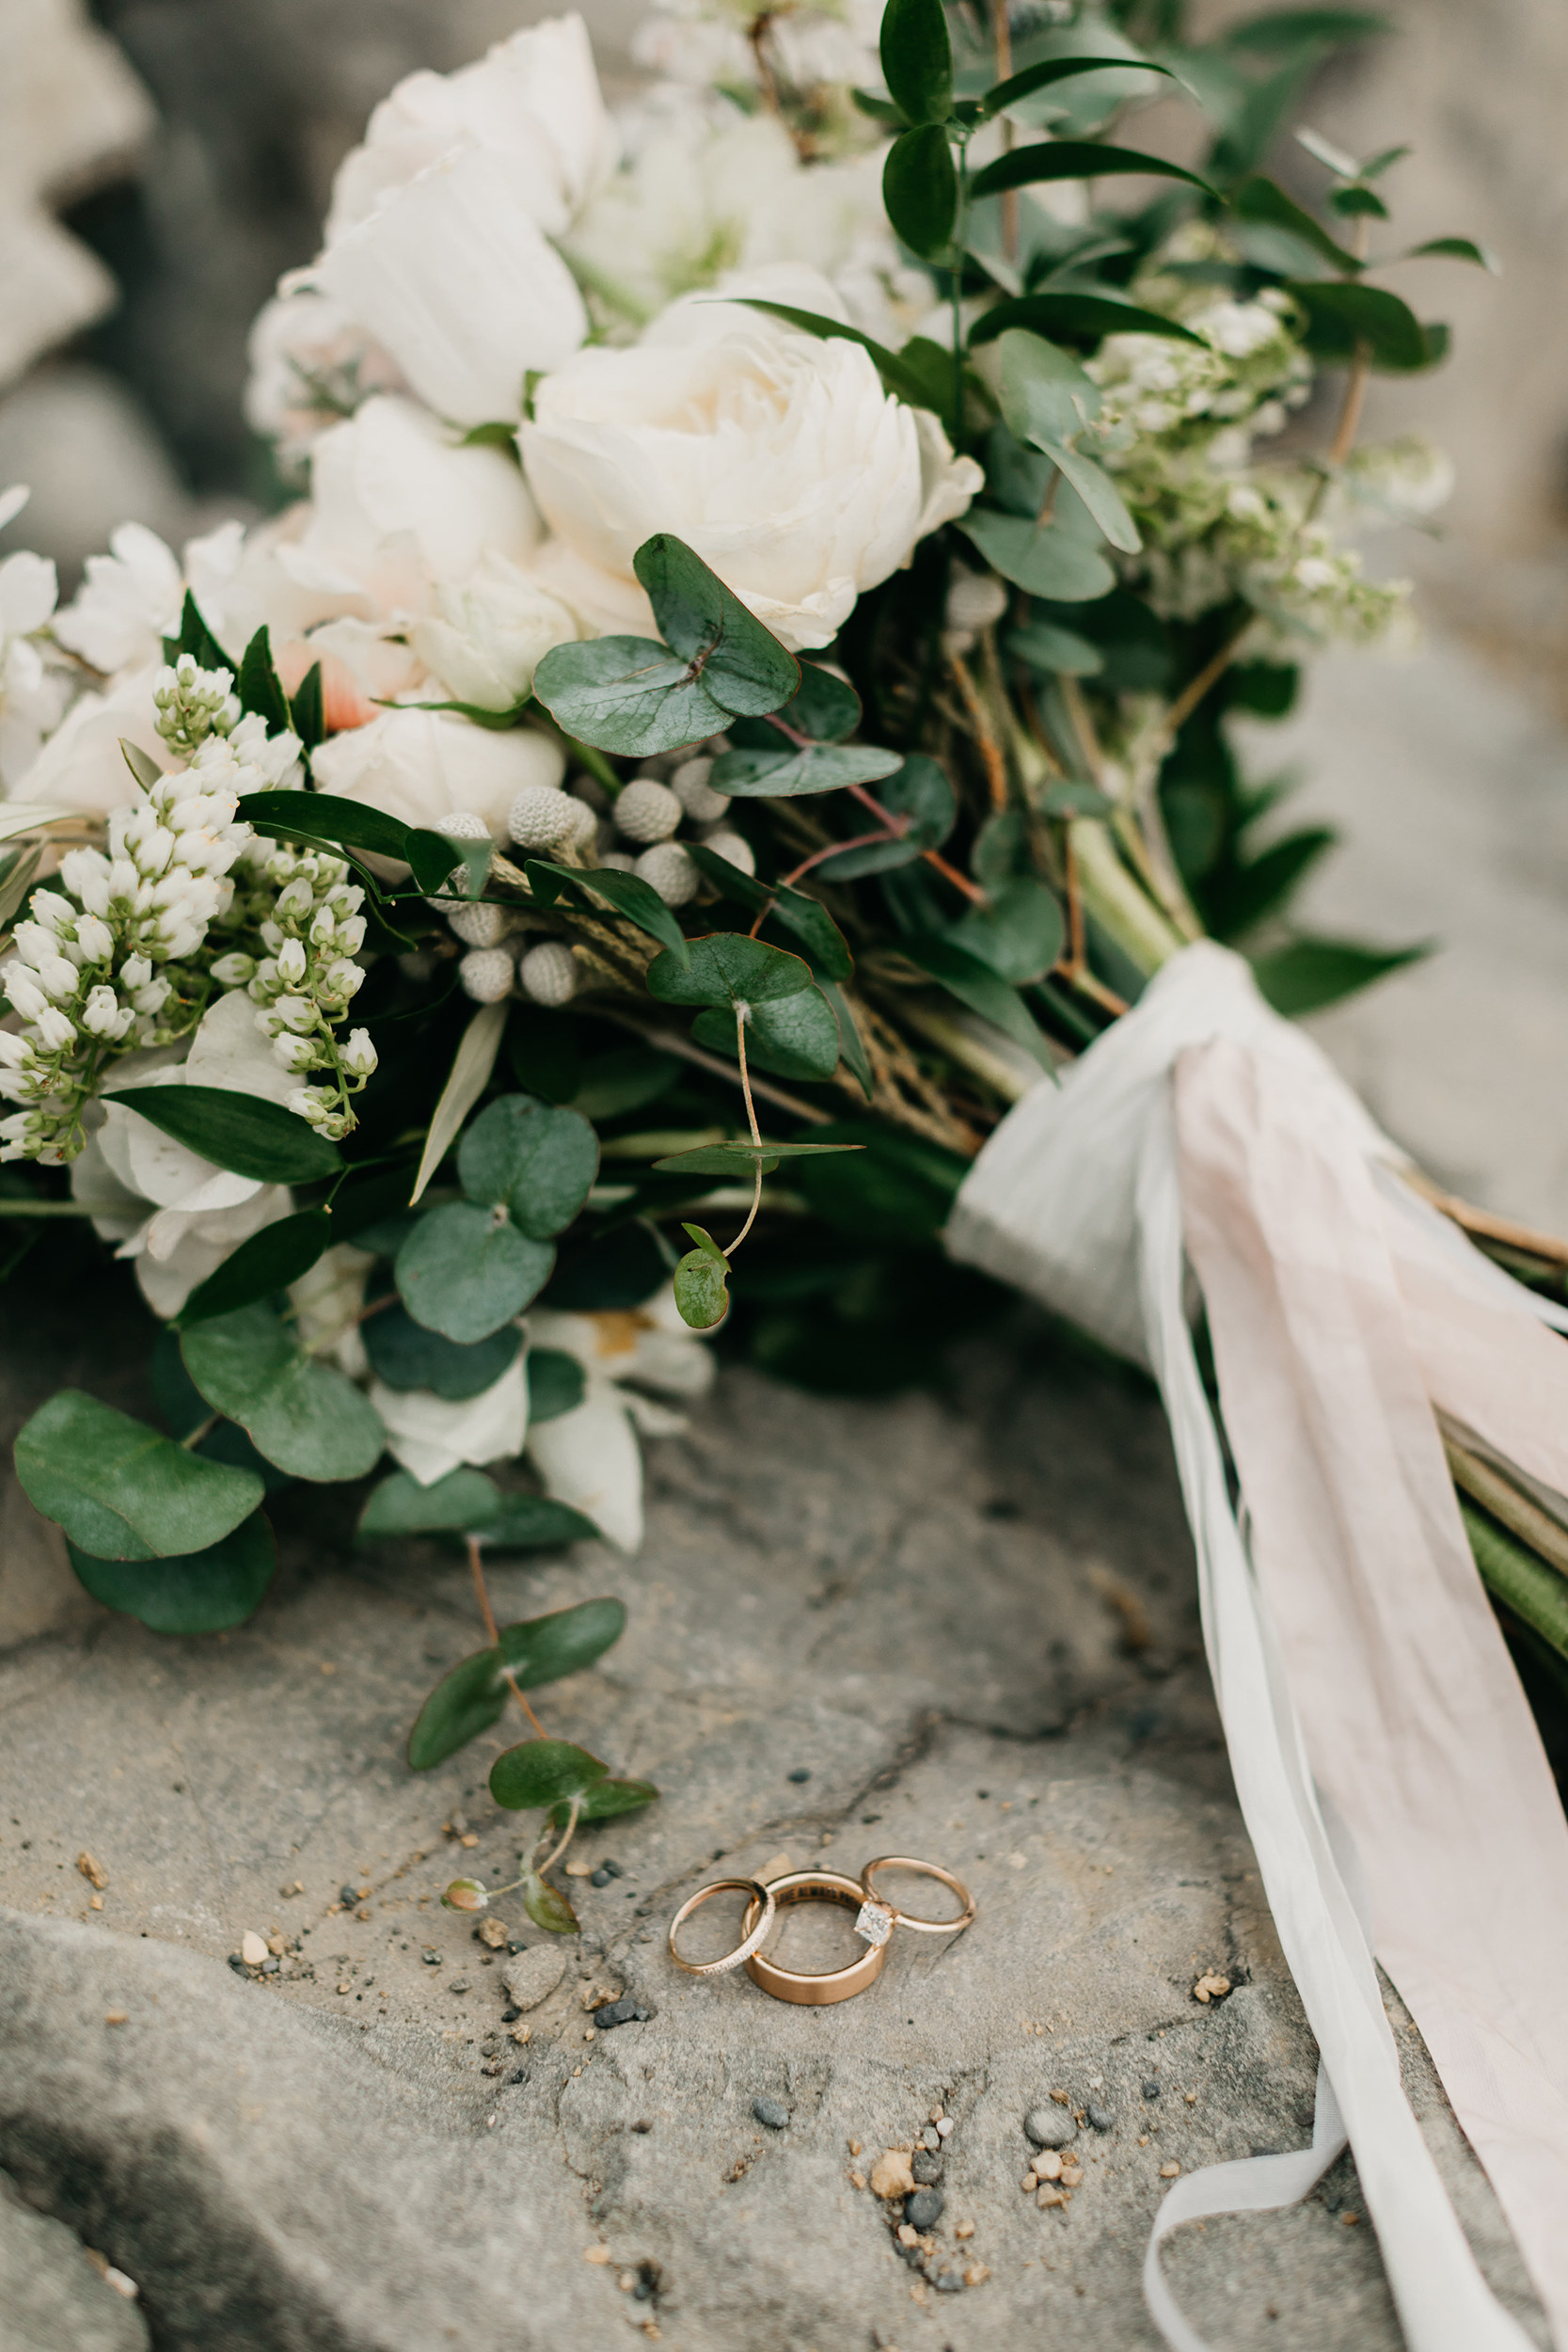 Violette-fleurs-event-design-roseville-Nelli-noel-photography-the-falls-event-center-Lush-bride-bouquet-whimsical-details.jpg